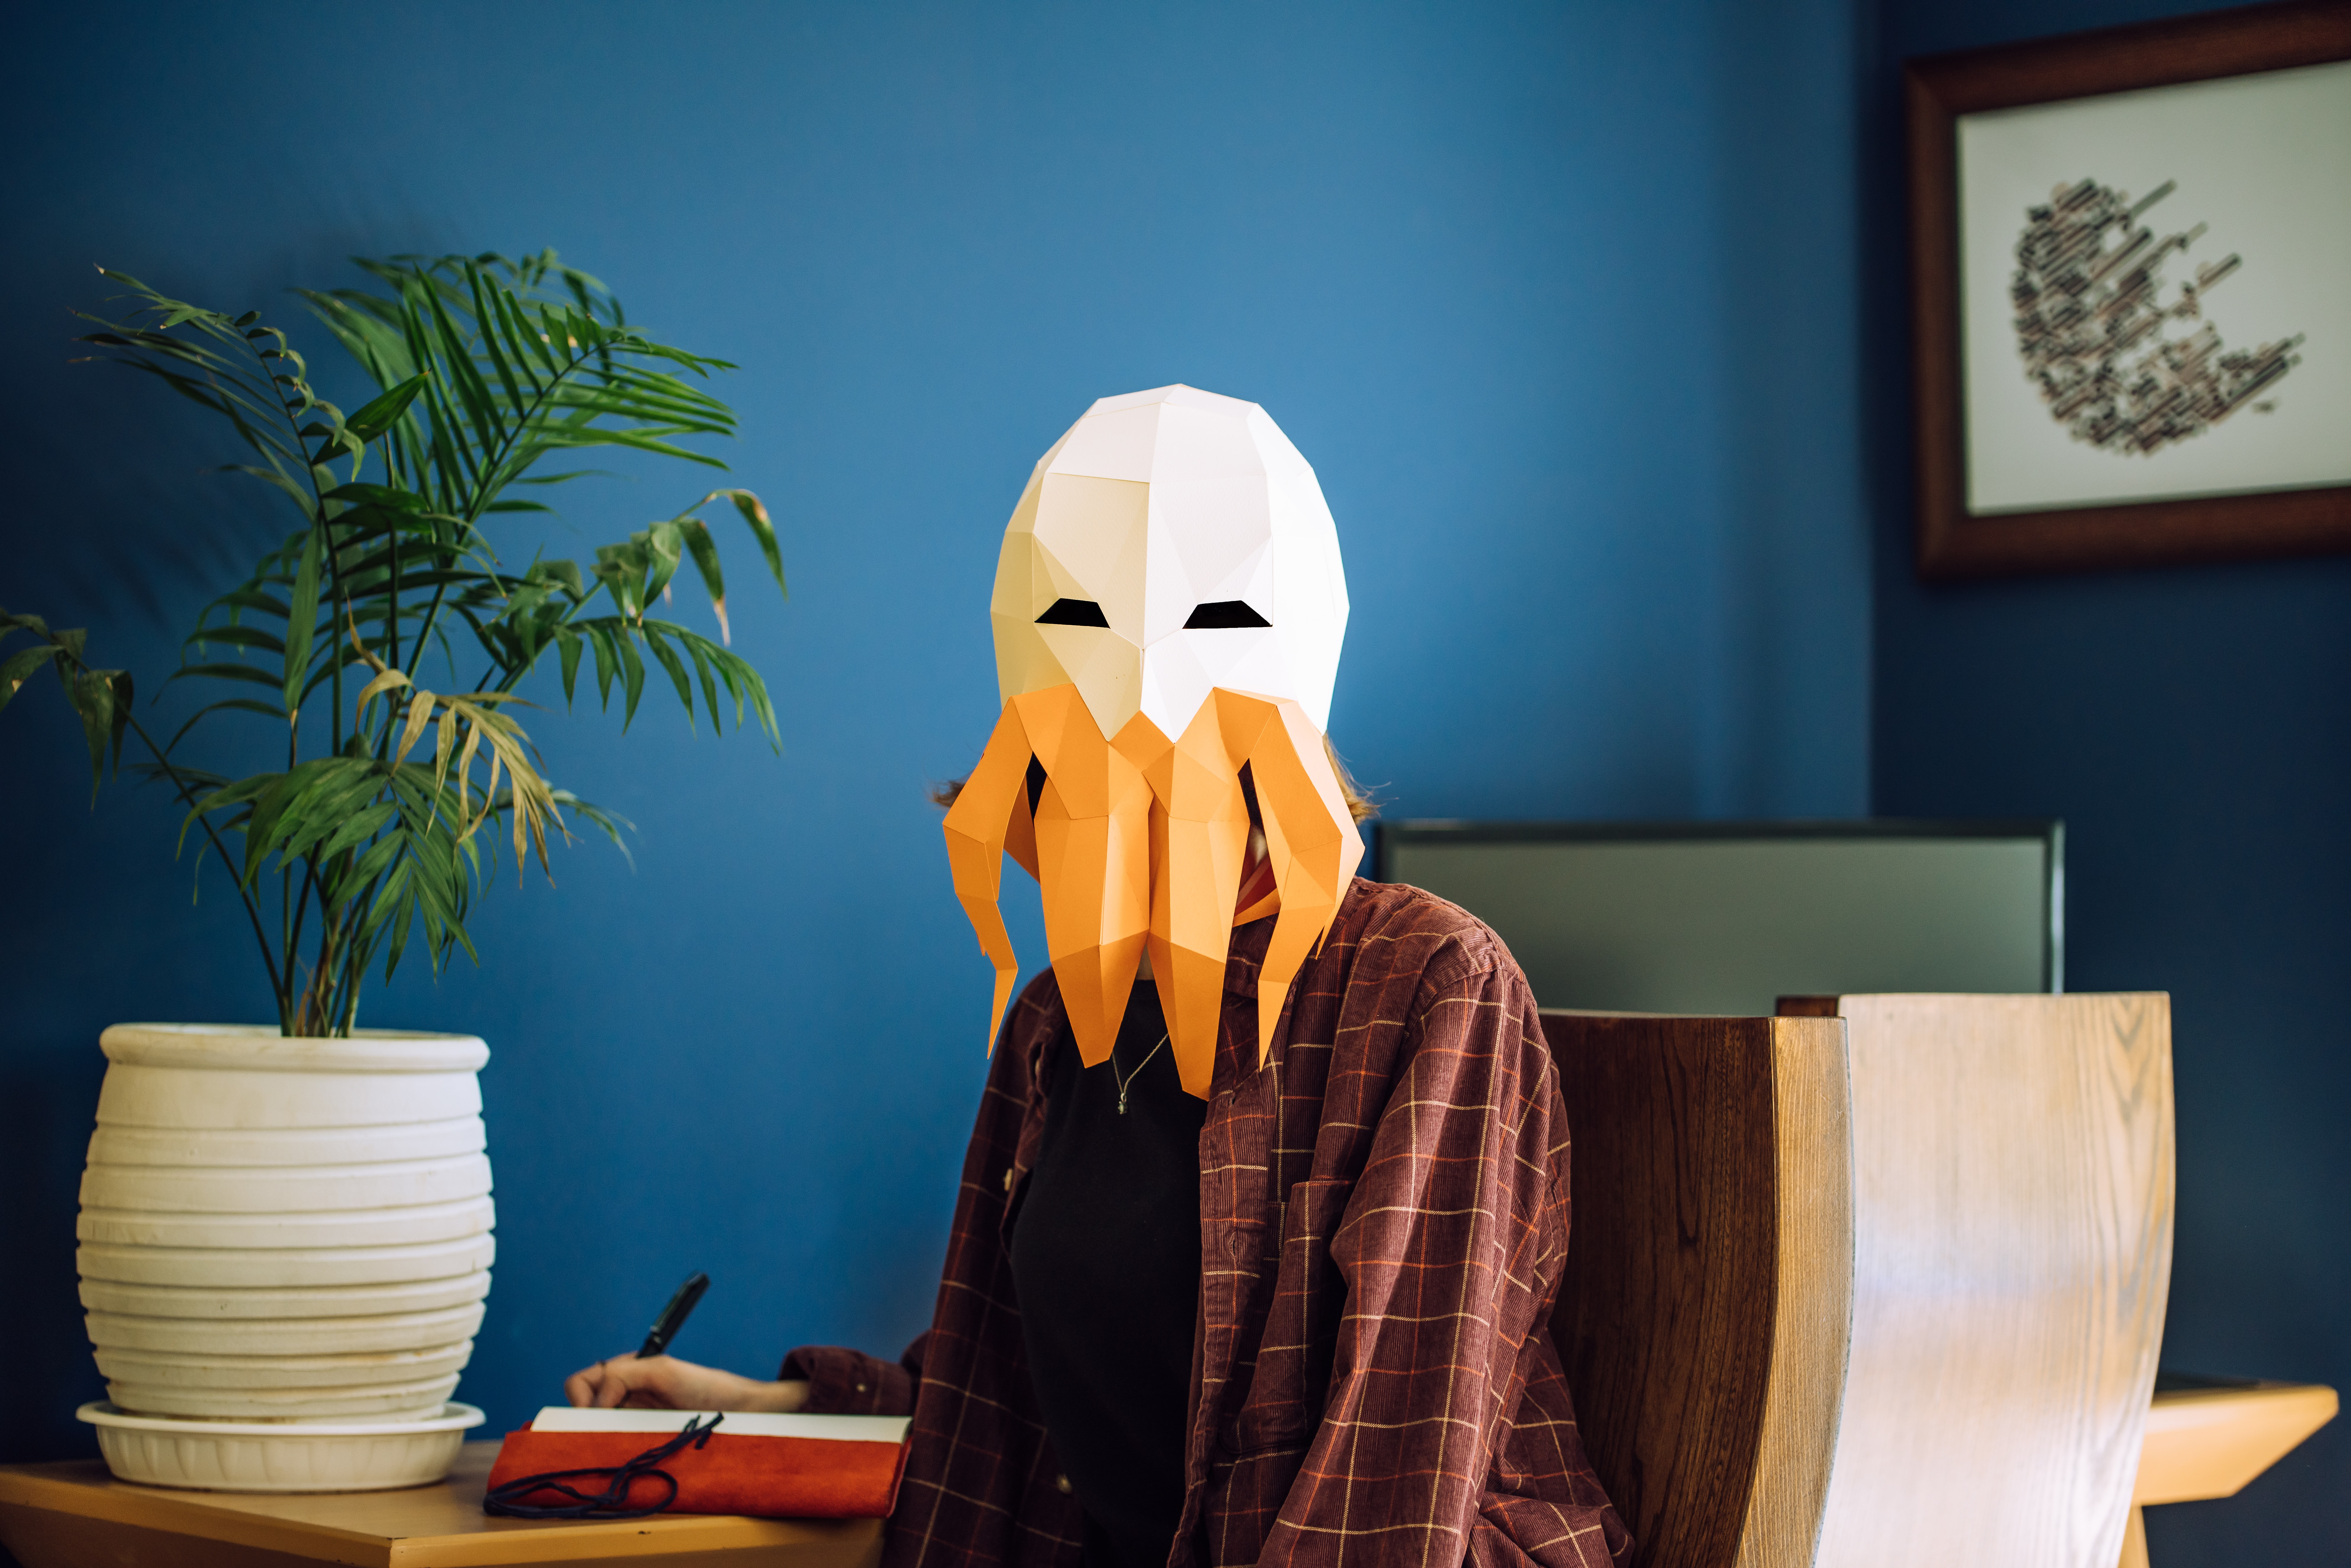 85690 download wallpaper Miscellanea, Miscellaneous, Human, Person, Mask, Polygon, Octopus, Room screensavers and pictures for free